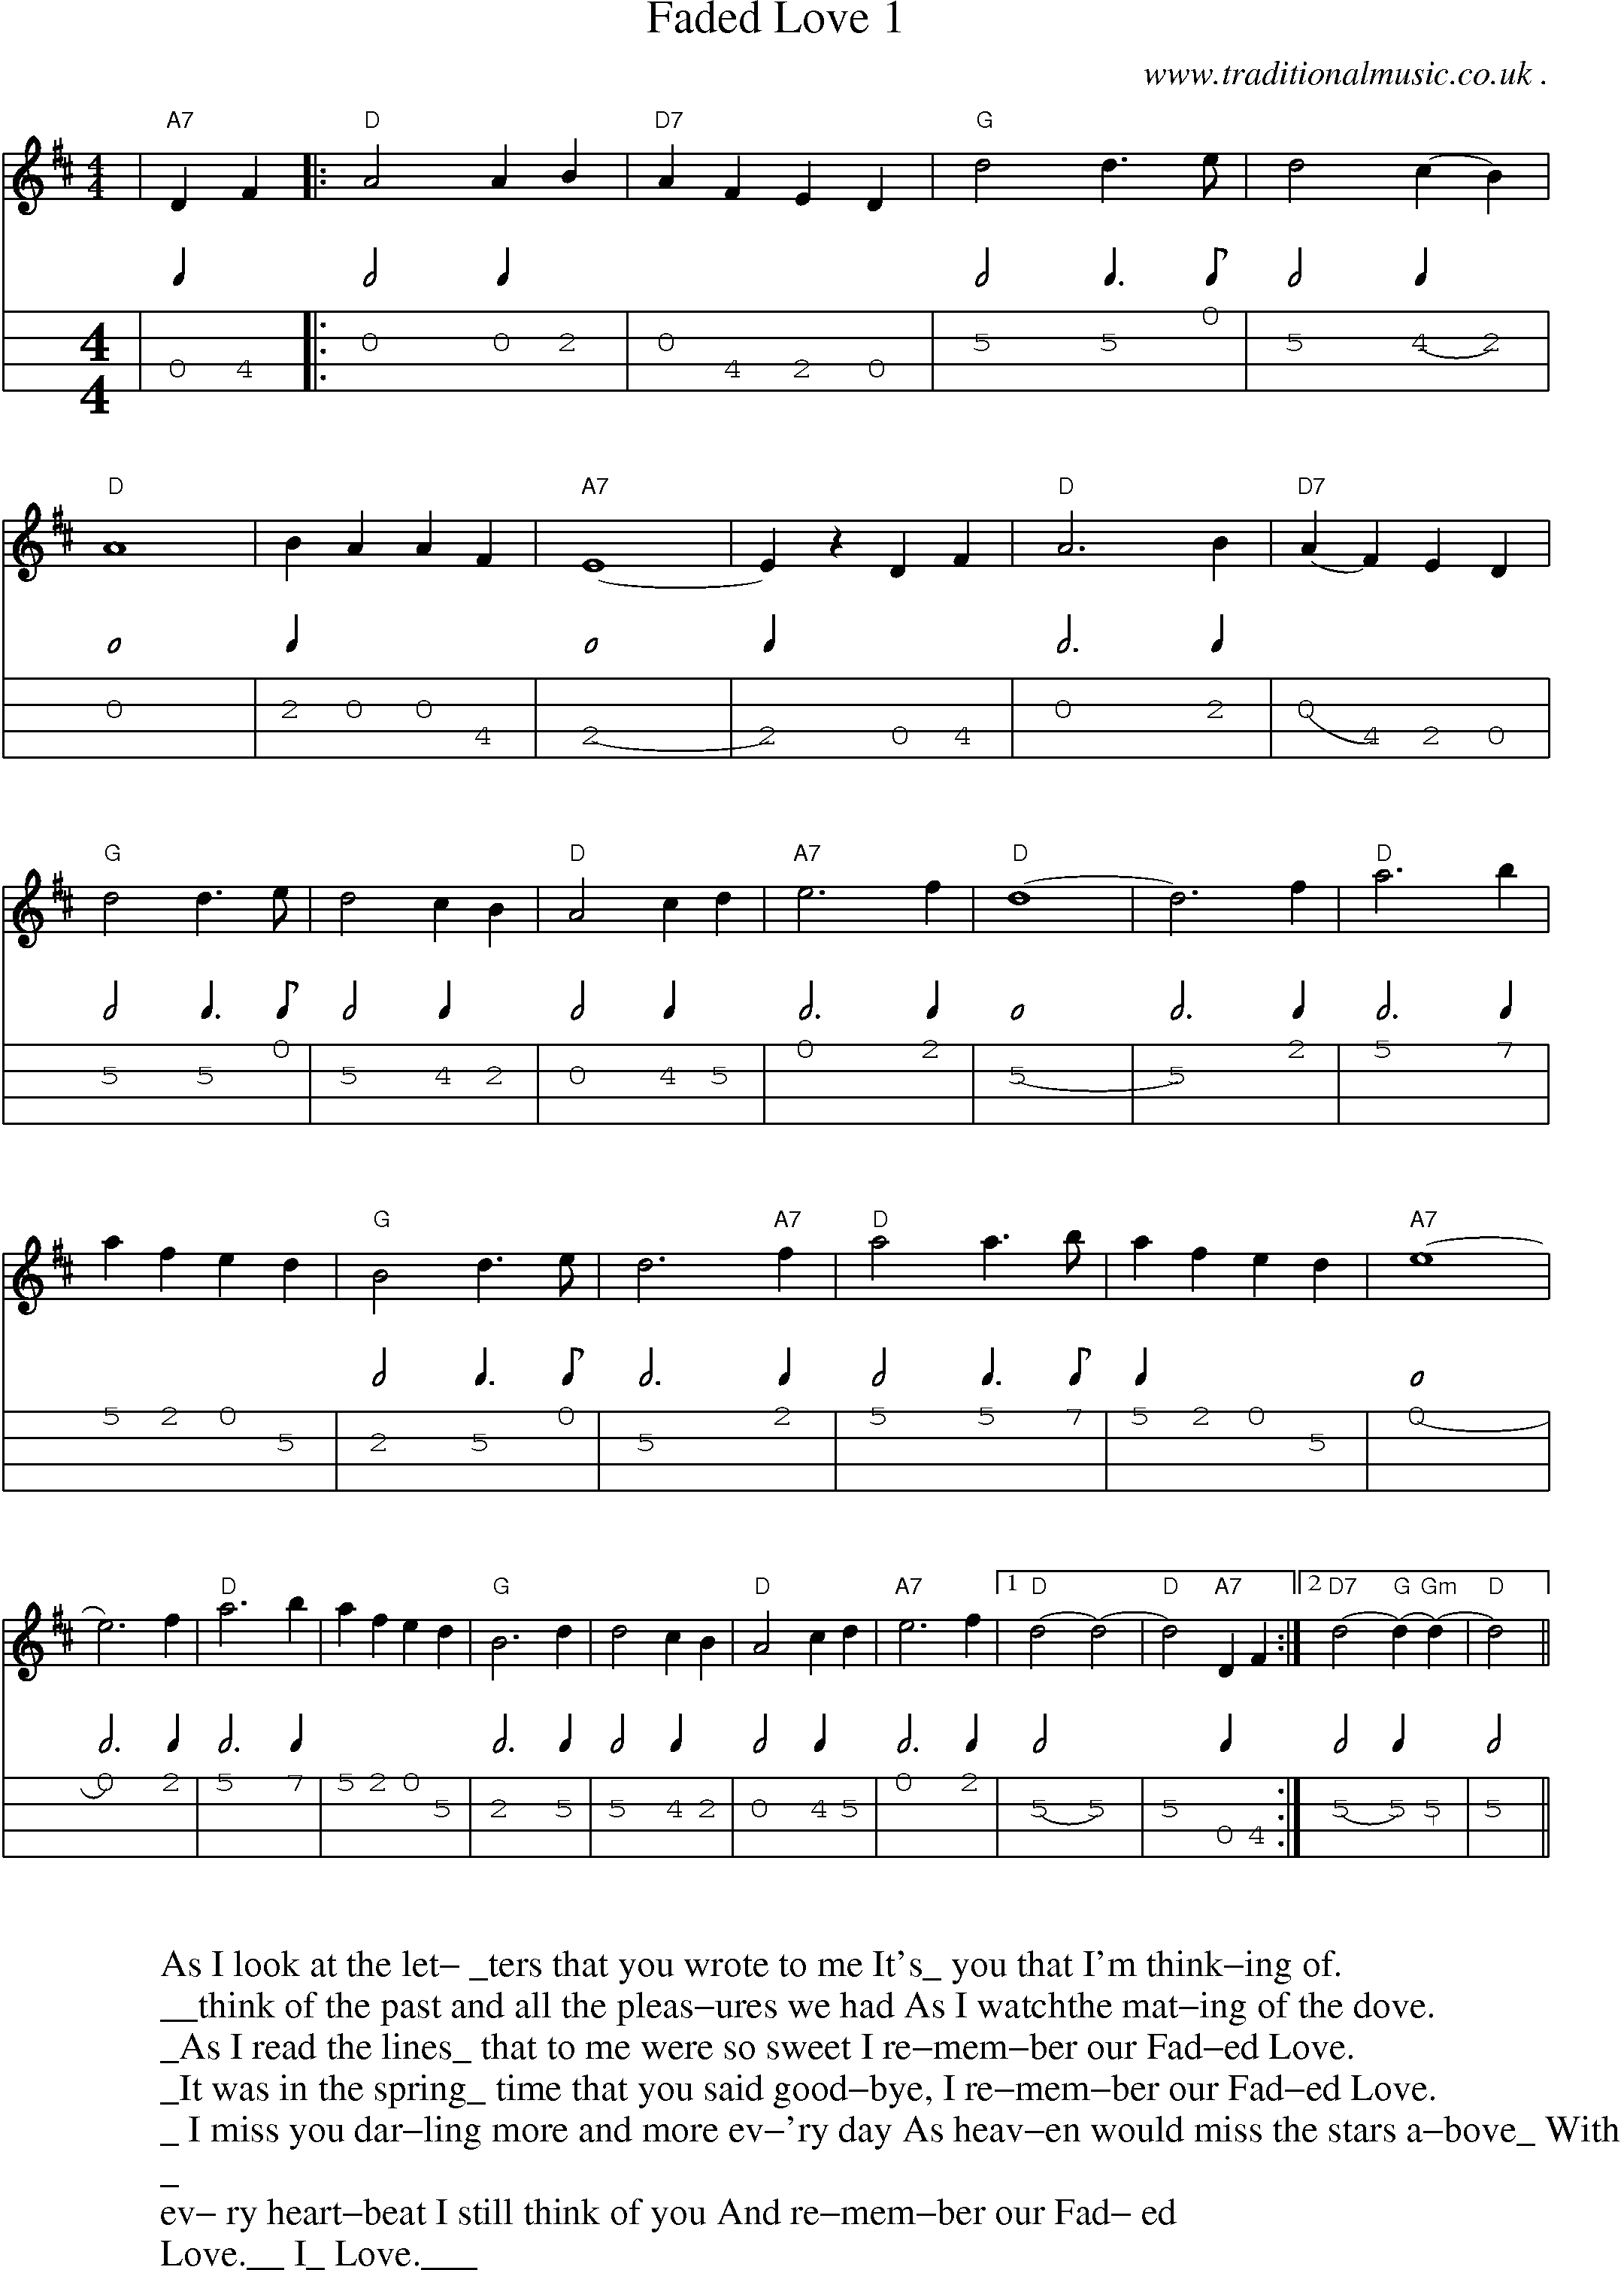 Music Score and Mandolin Tabs for Faded Love 1 | music in 2019